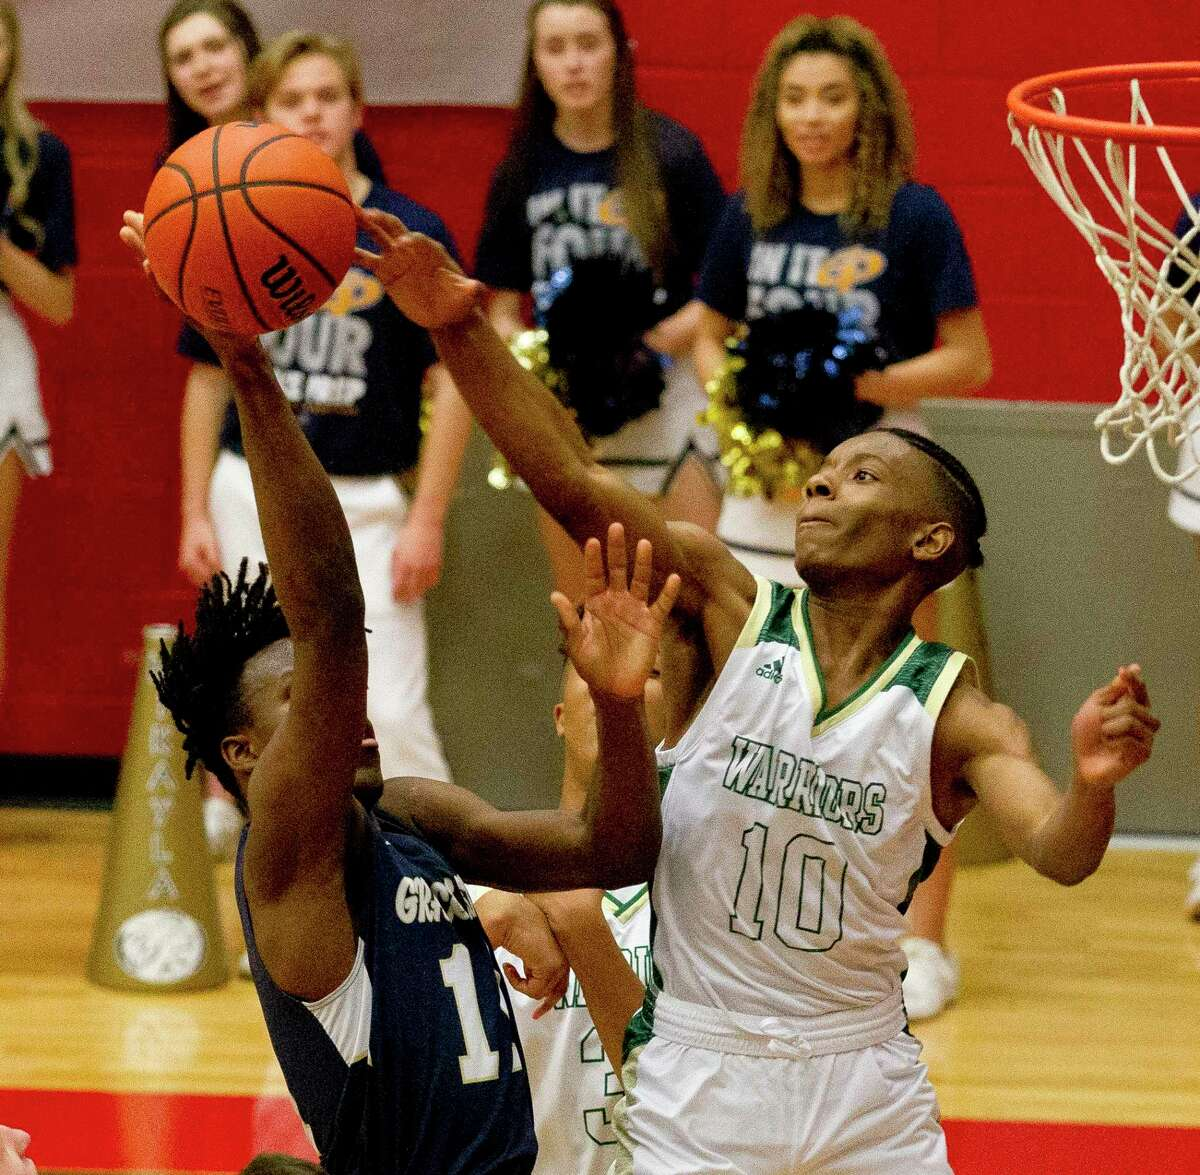 The Woodlands Christian Academy guard Bakari LaStrap is a candidate for the Guy V. Lewis Award, giving anually to the best player in the Greater Houston area.